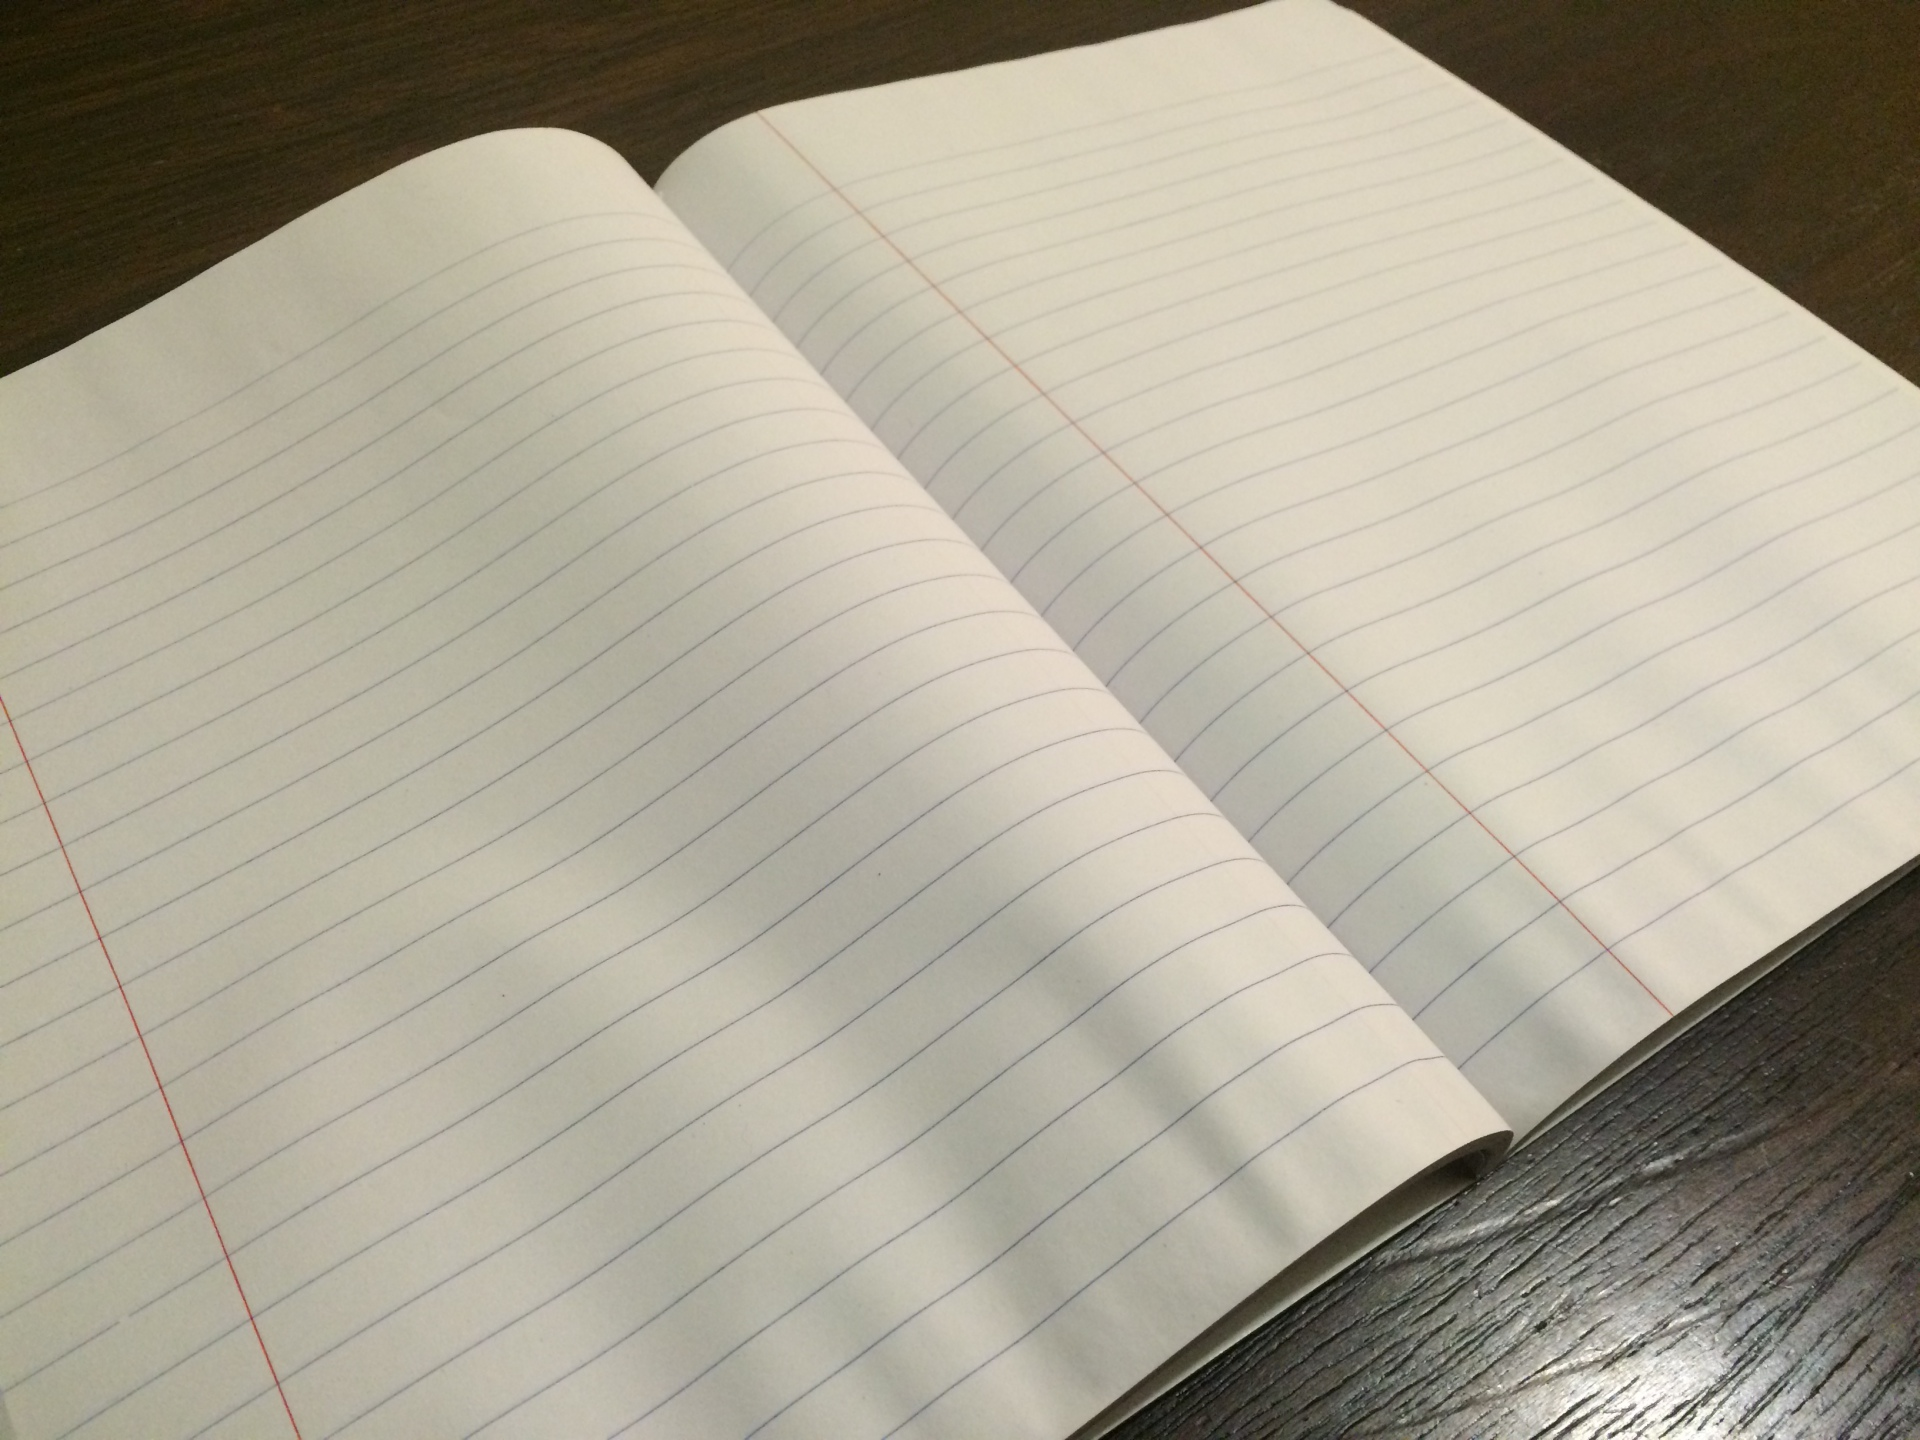 The Feared Blank Page